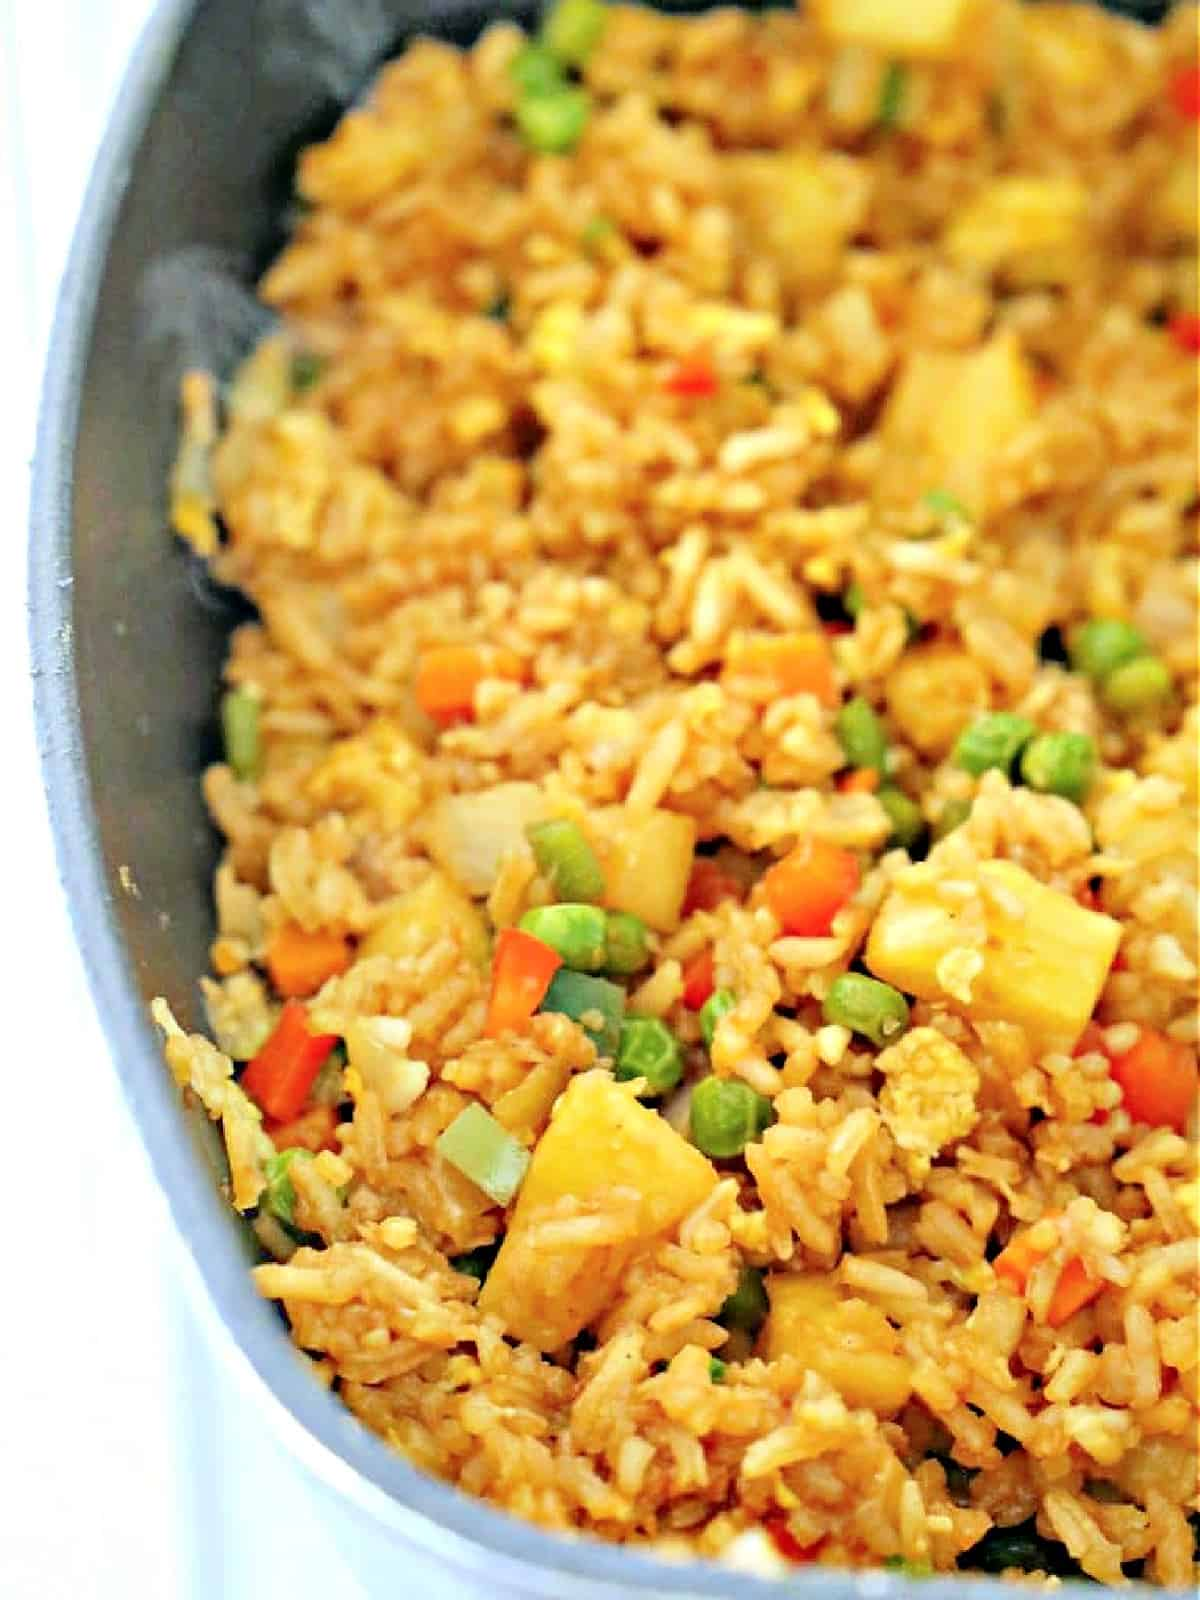 pan of tropical fried rice